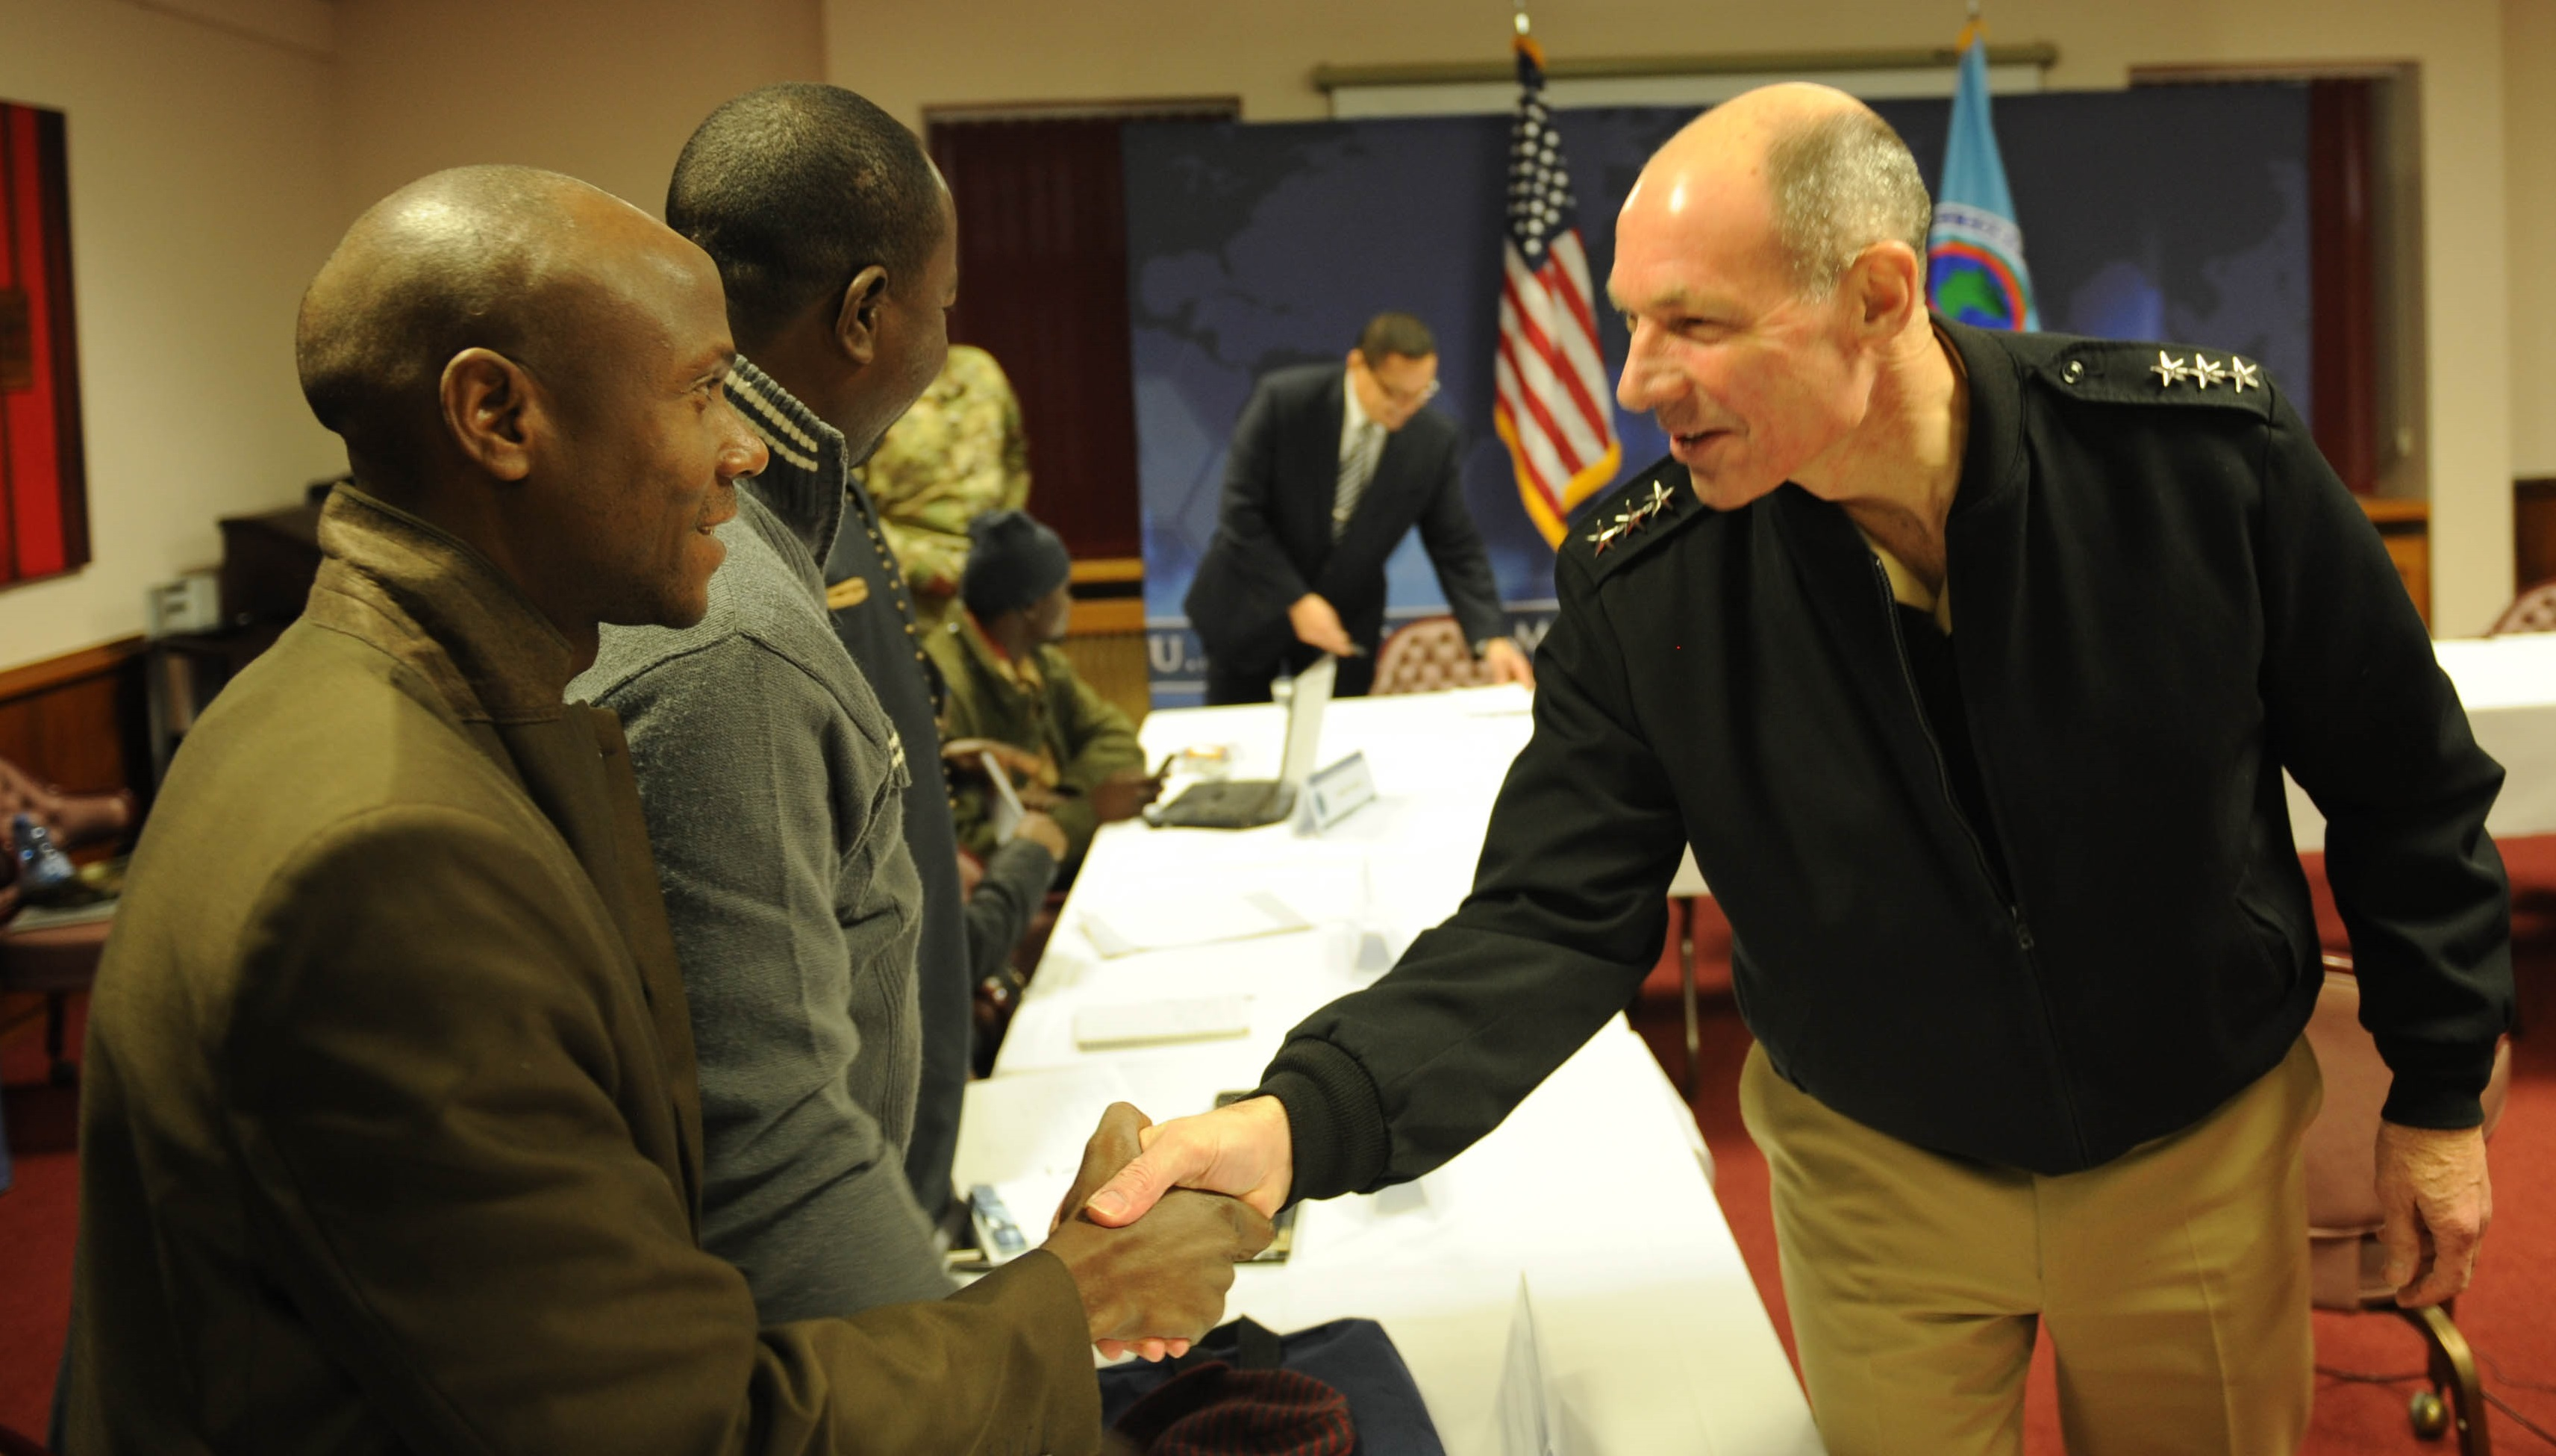 Saley Moustapha Hassane, director of Labari TV & Radio News (left) shakes hands with U.S. Navy Vice Adm. Michael Franken, deputy to the commander for military operations at U.S. Africa Command.  A media delegation of journalists from Cameroon and Niger were hosted by AFRICOM Nov. 28 – Dec. 1, 2016, at the U.S. Army Garrison Stuttgart.  The event provided an opportunity for journalists and reporters from the continent to learn about the command's mission, role and programs.  The week concluded with the journalists having the opportunity to interview both Franken, and U.S. Amb. Alexander Laskaris, AFRICOM's deputy for civil-military engagement. (U.S. Africa Command photo by U.S. Army Staff Sgt. Grady Jones/Released)